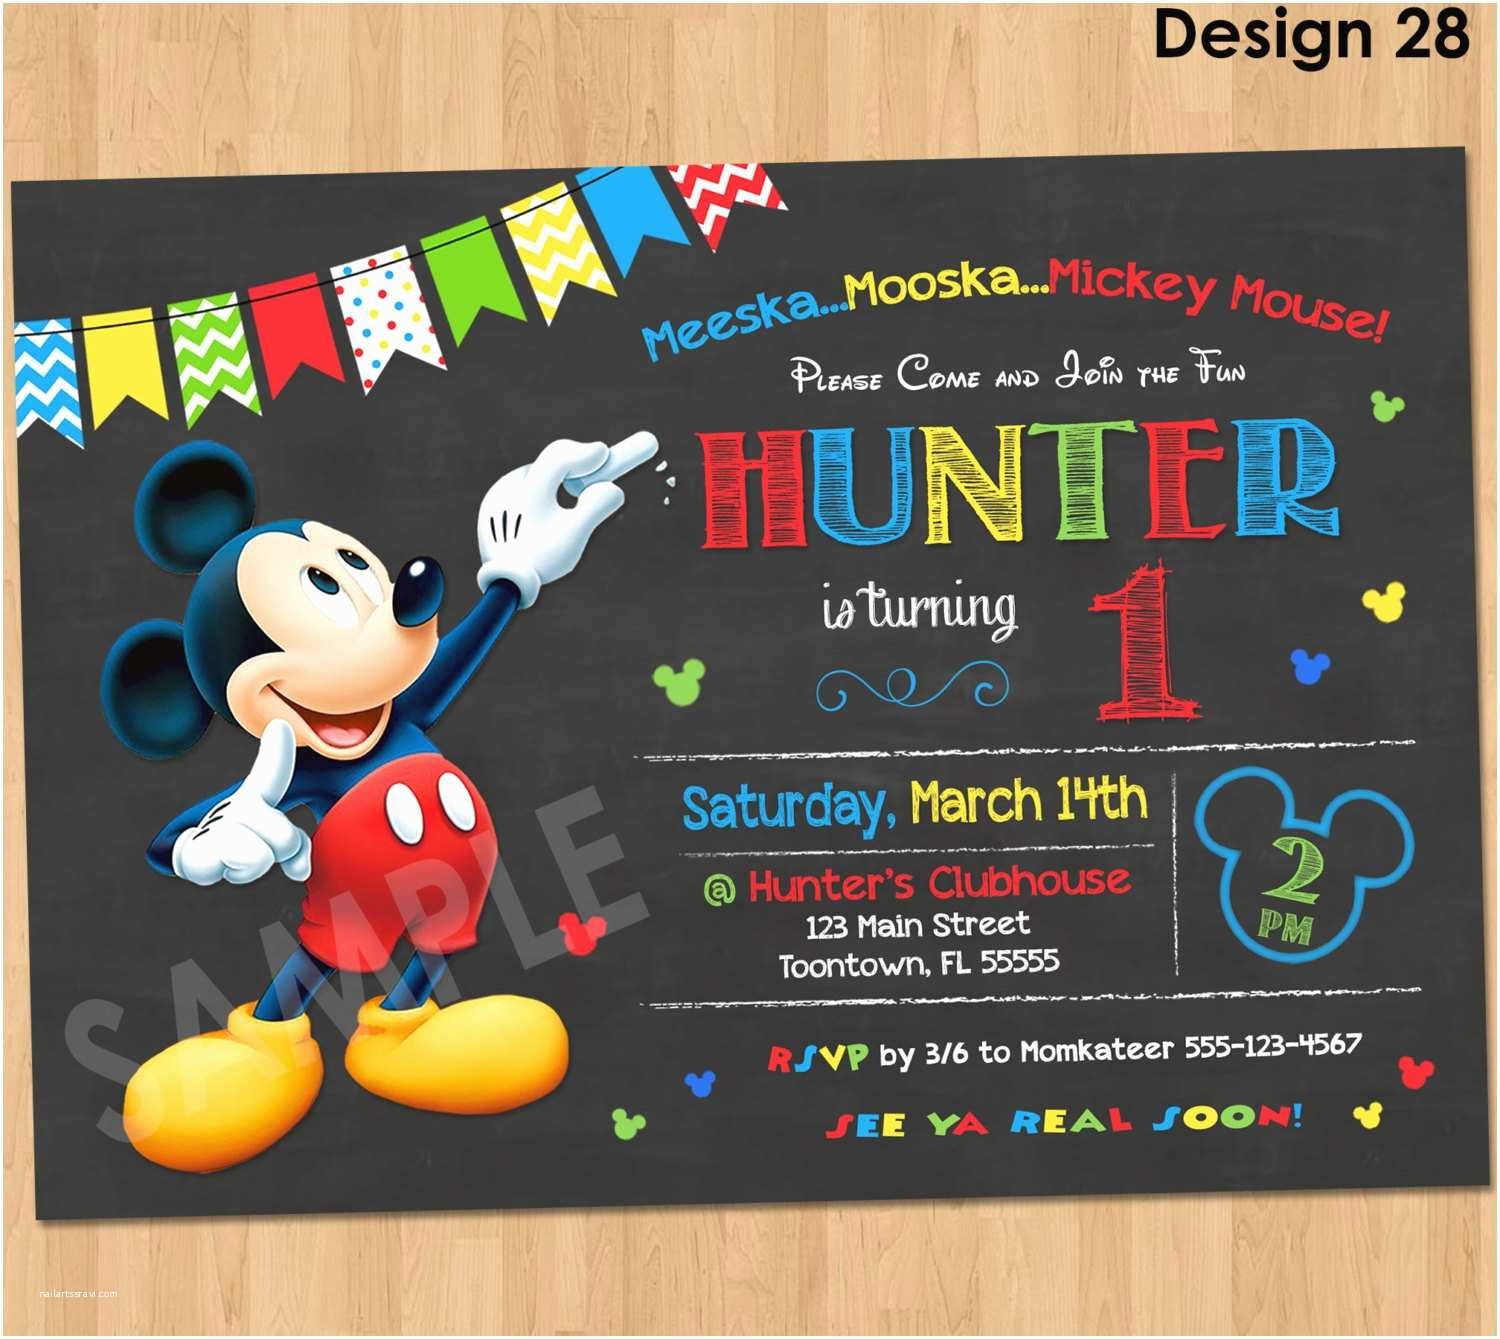 Personalized Birthday Invitations Mickey Mouse Clubhouse Birthday Invitations Personalized